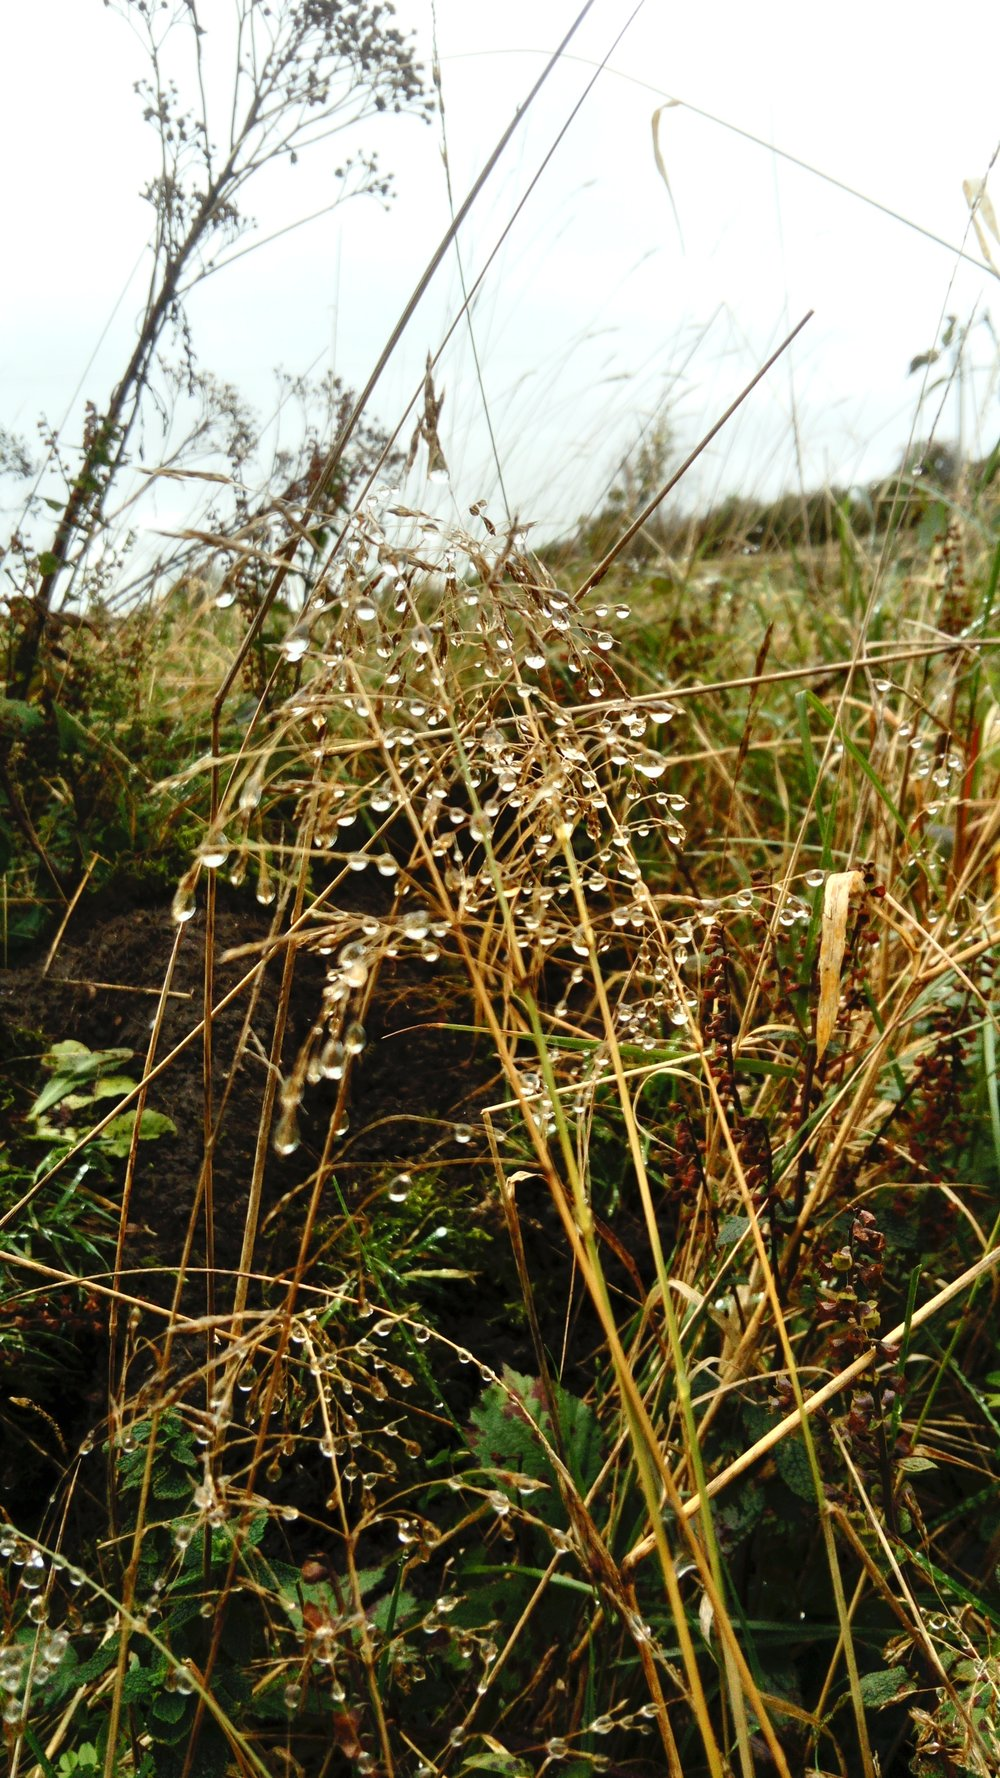 Dew drops that looked like crystals - taken by Donna on one of our Mindful Walks